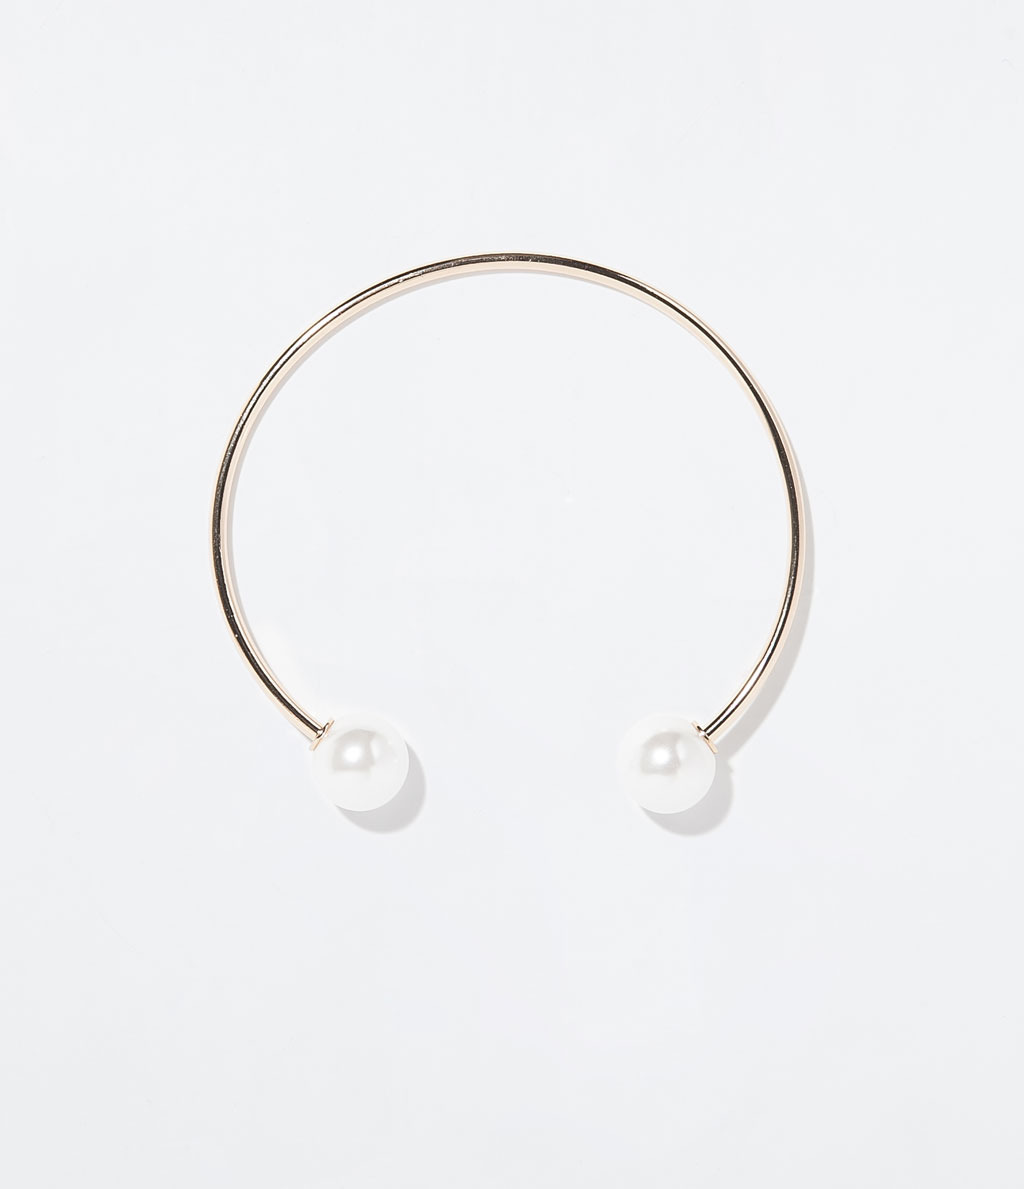 Choker With Pearls - secondary colour: ivory/cream; predominant colour: gold; occasions: evening, occasion; style: choker/collar/torque; length: choker; size: standard; material: chain/metal; finish: metallic; embellishment: pearls; season: s/s 2014